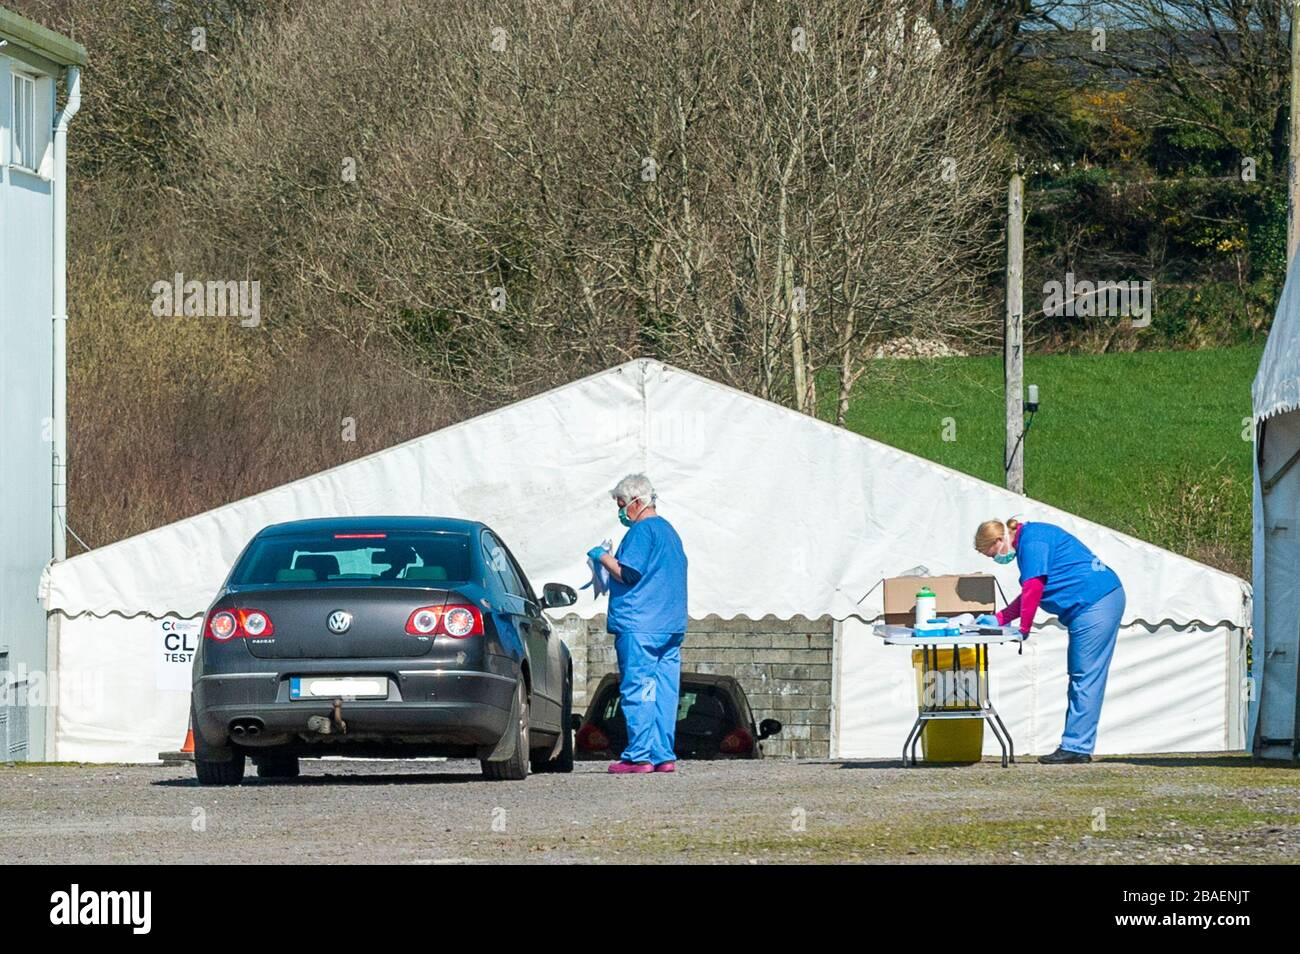 ballynacarriga-west-cork-ireland-27th-mar-2020-a-healthcare-worker-talks-to-the-driver-of-a-car-who-has-travelled-to-the-covid-19-swabtesting-centre-in-randal-og-gaa-club-for-the-occupants-to-be-tested-for-the-coronavirus-the-testing-station-was-originally-in-dunmanway-community-hospital-but-was-moved-yesterday-in-the-interests-of-the-health-of-elderly-patients-the-centre-is-the-only-such-facility-in-west-cork-credit-andy-gibsonalamy-live-news-2BAENJT.jpg